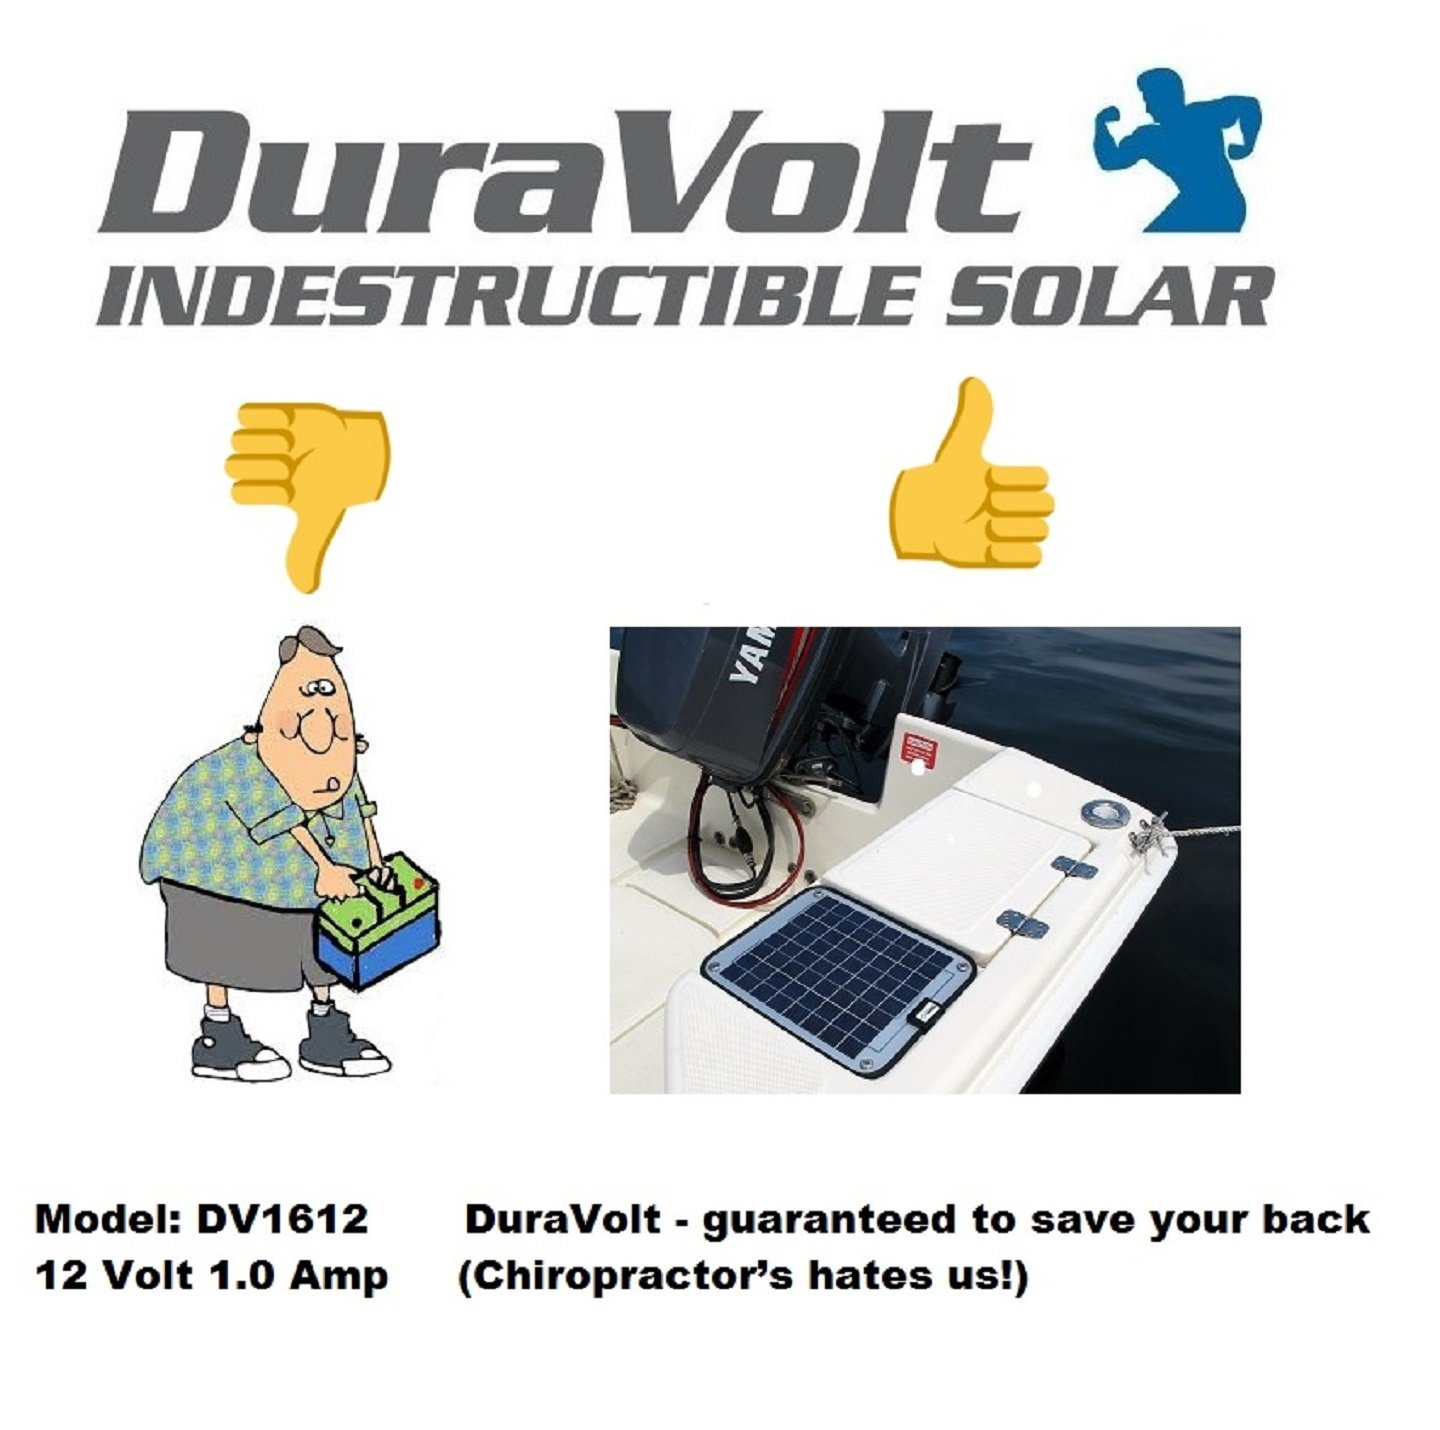 NOW 20 Watt 1.0 Amp - Solar Battery Charger - Boat, RV, Marine & Trolling Motor Solar Panel - 12 Volt - No experience Plug & Play Design. Dimensions 14.1'' L x 15.7'' W x 1/4'' Thick. 10' cable. by DuraVolt (Image #1)